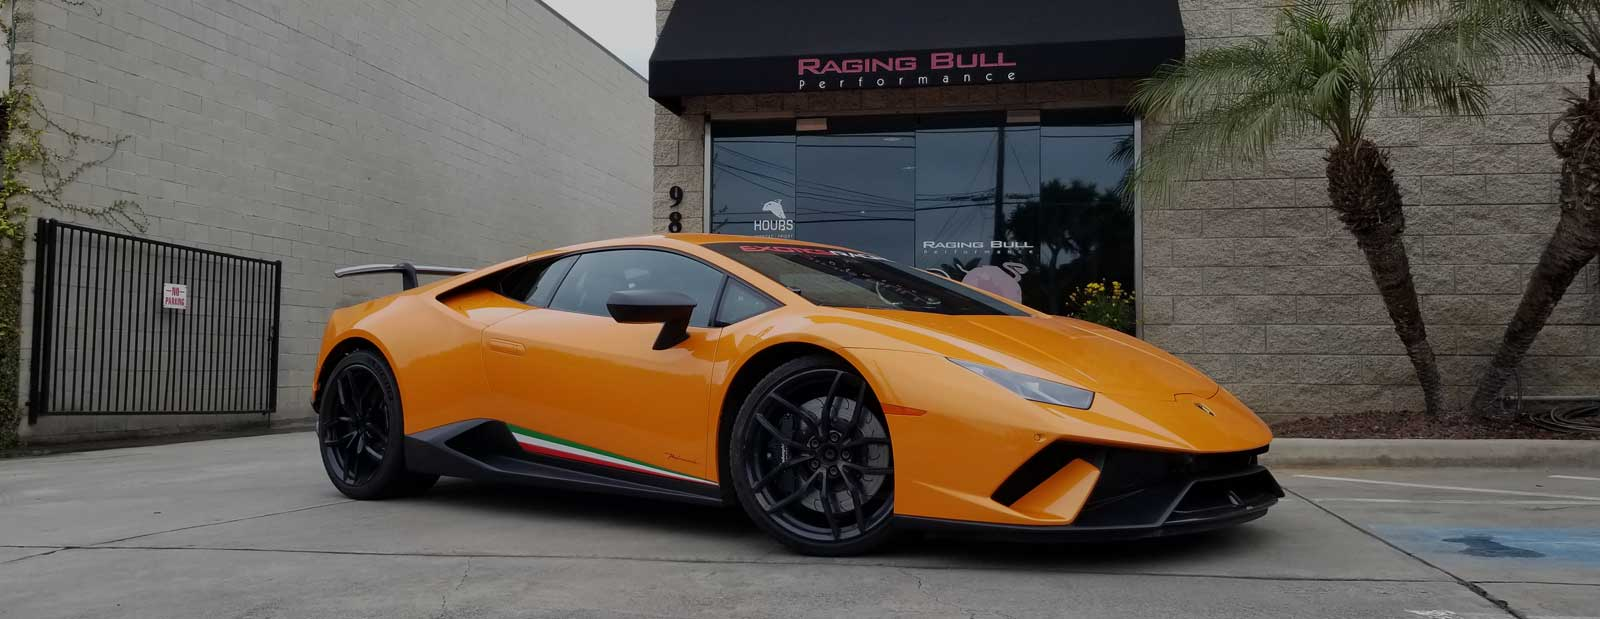 Luxury Auto Repair - Raging Bull Performance